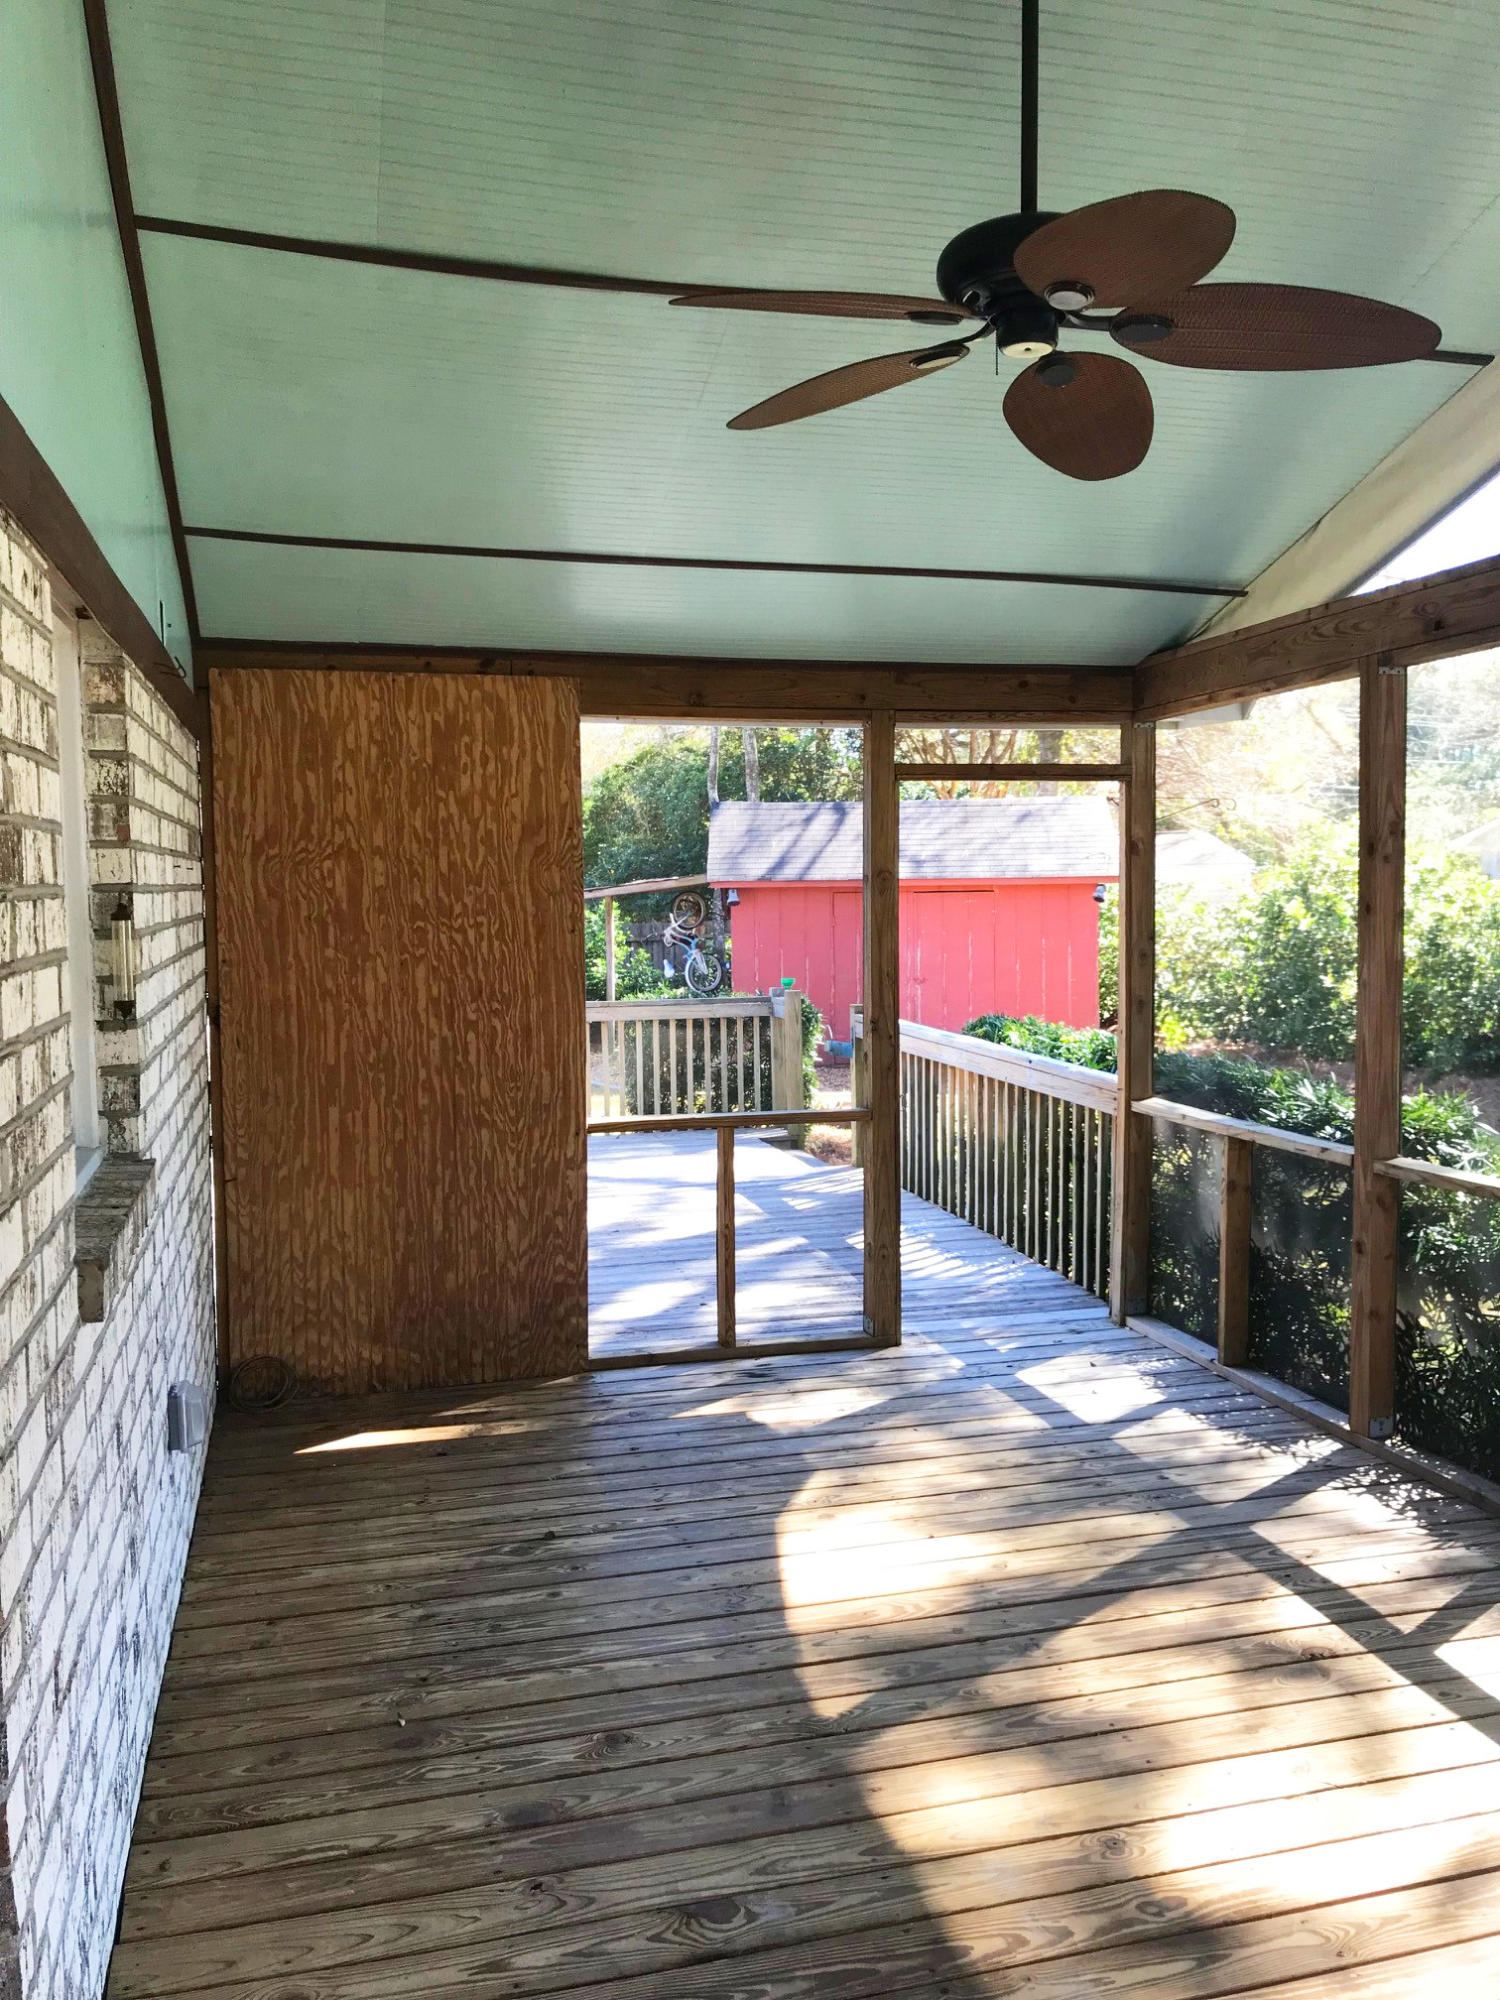 Old Mt Pleasant Homes For Sale - 915 Randall, Mount Pleasant, SC - 3